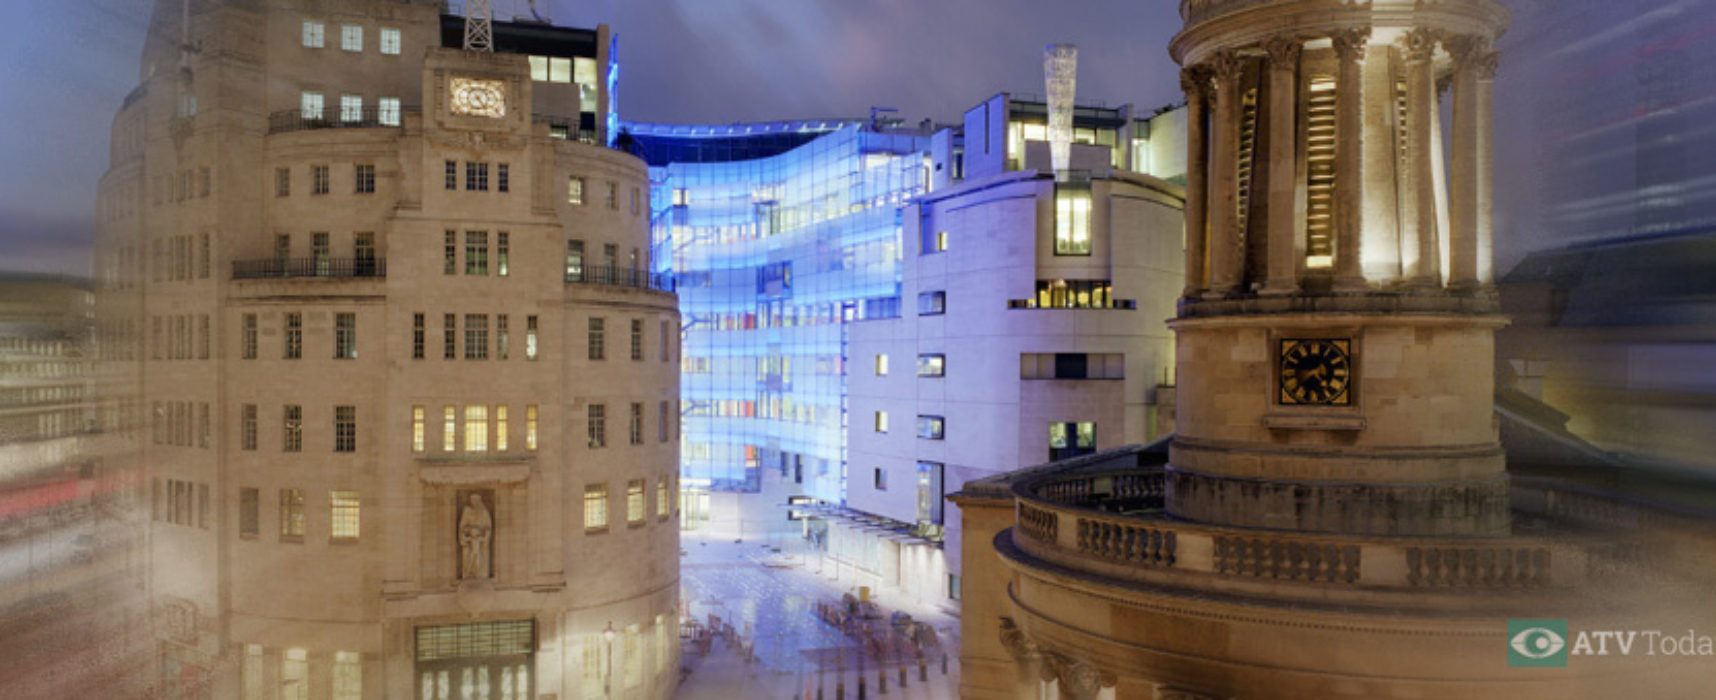 BBC delay TV Licence changes for pensioners